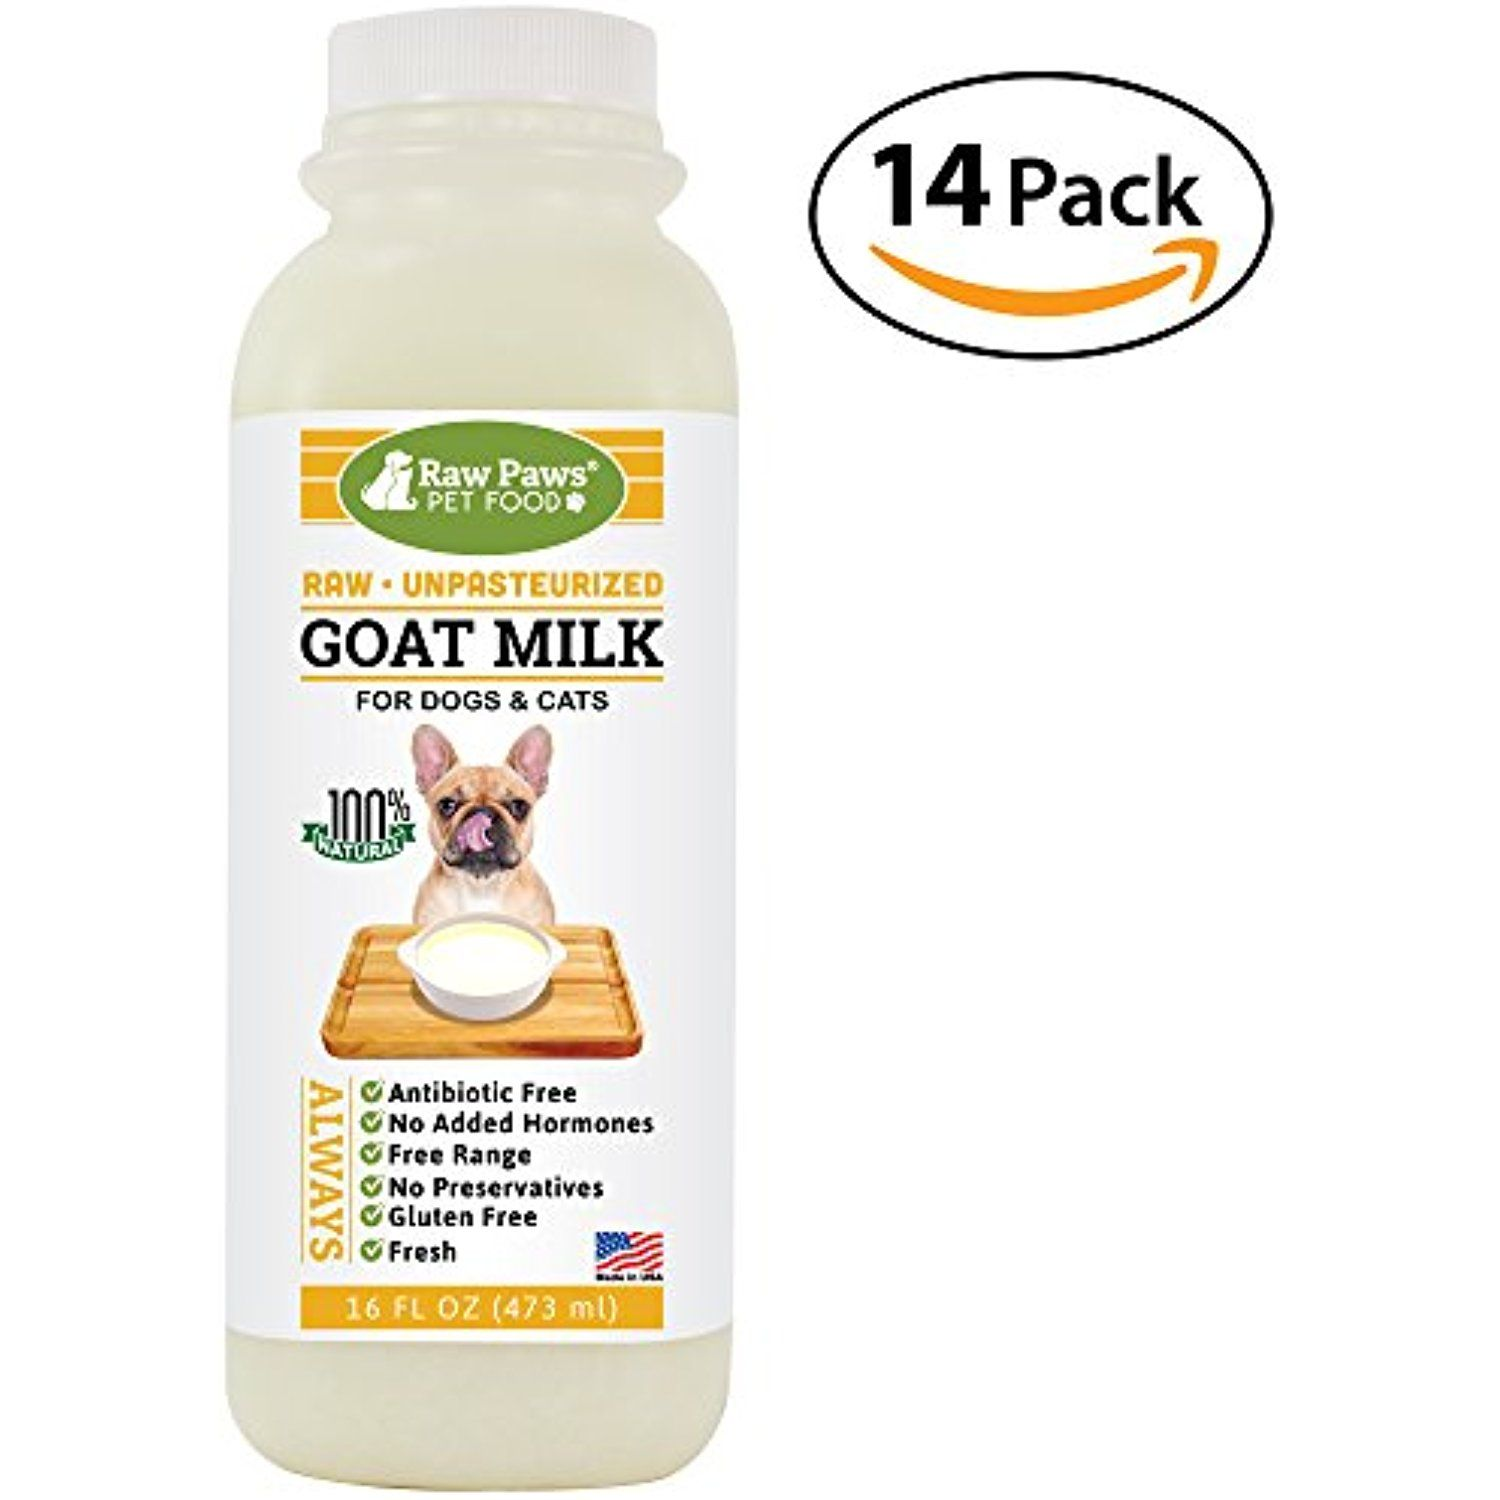 Raw Paws Pet Frozen Raw Goats Milk For Dogs And Cats 16 Ounce 14 Pack Dog Food Topper Dogs Food Topper Food Animals Goat Milk